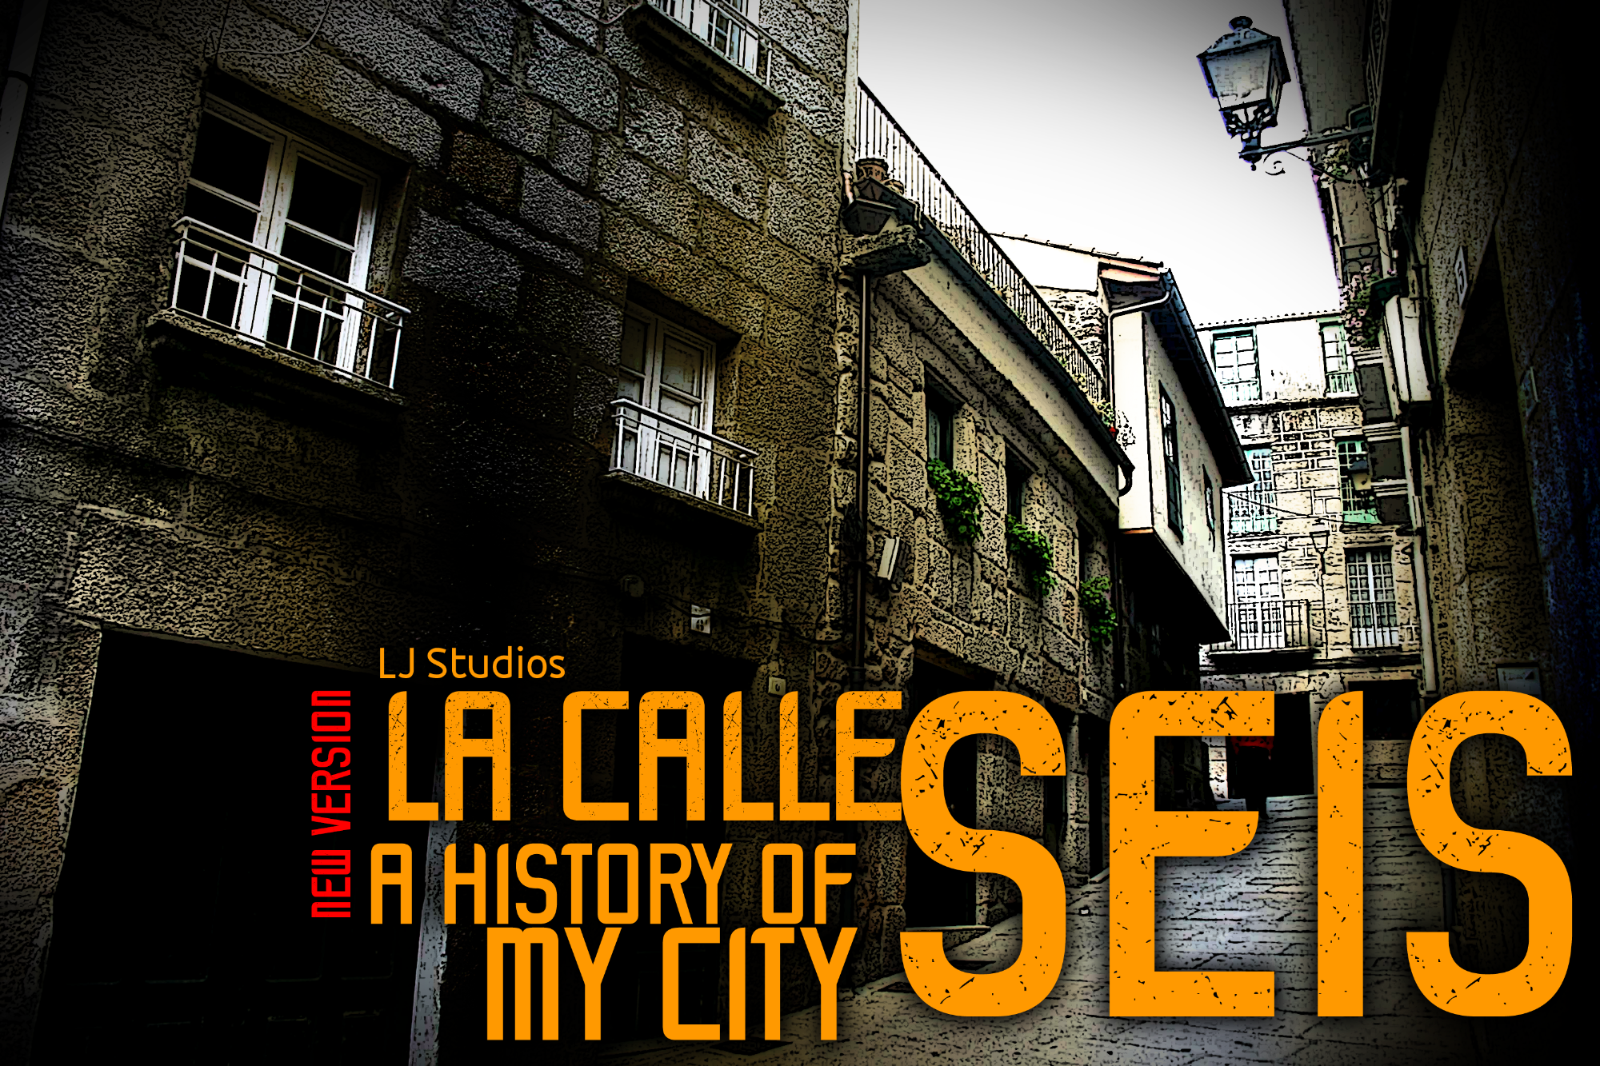 La calle Seis example image 1